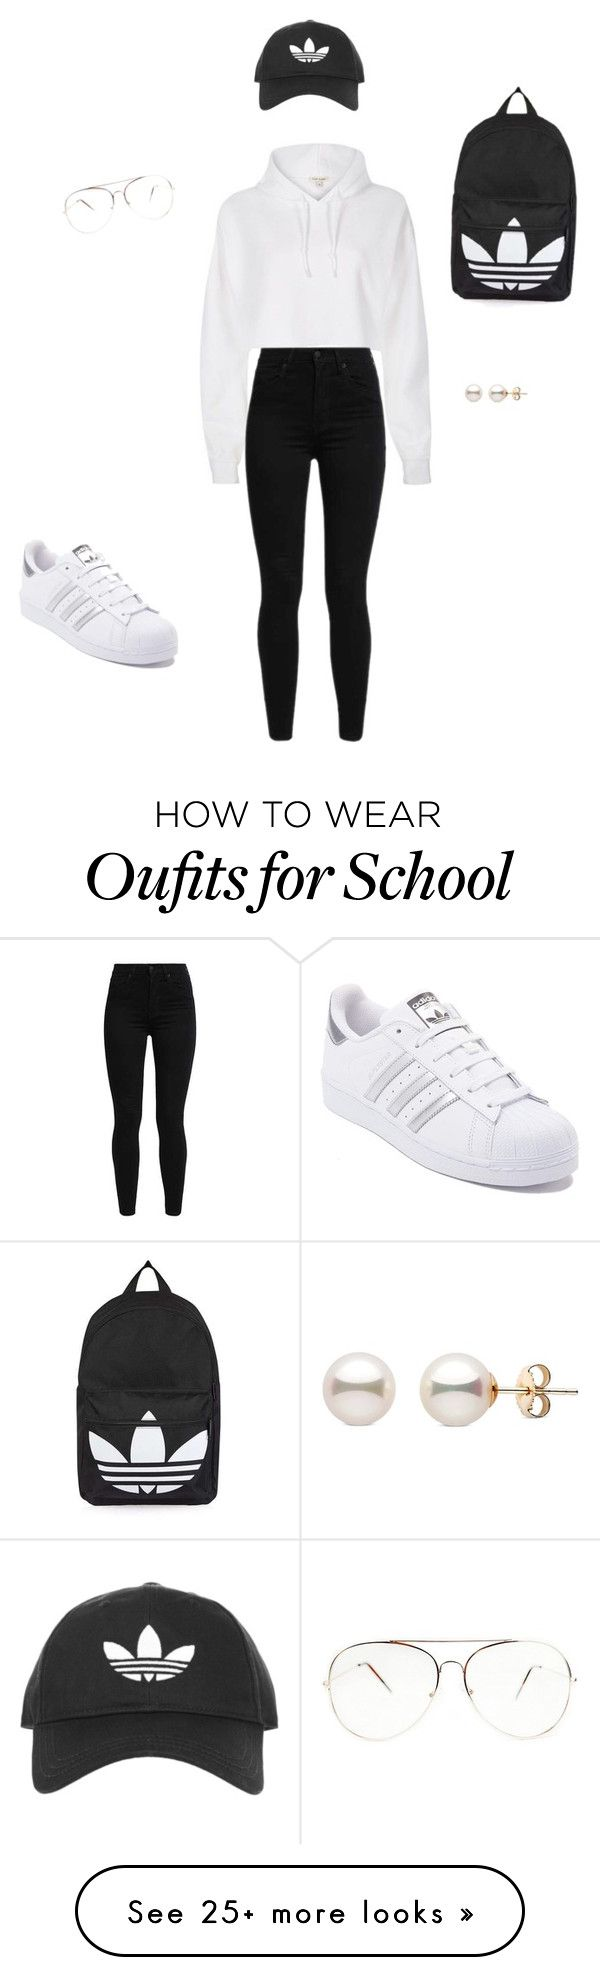 """""""I lil school , or work out look"""" by genesisemuedue on Polyvore featuring River Island, Topshop, Levi's and adidas"""